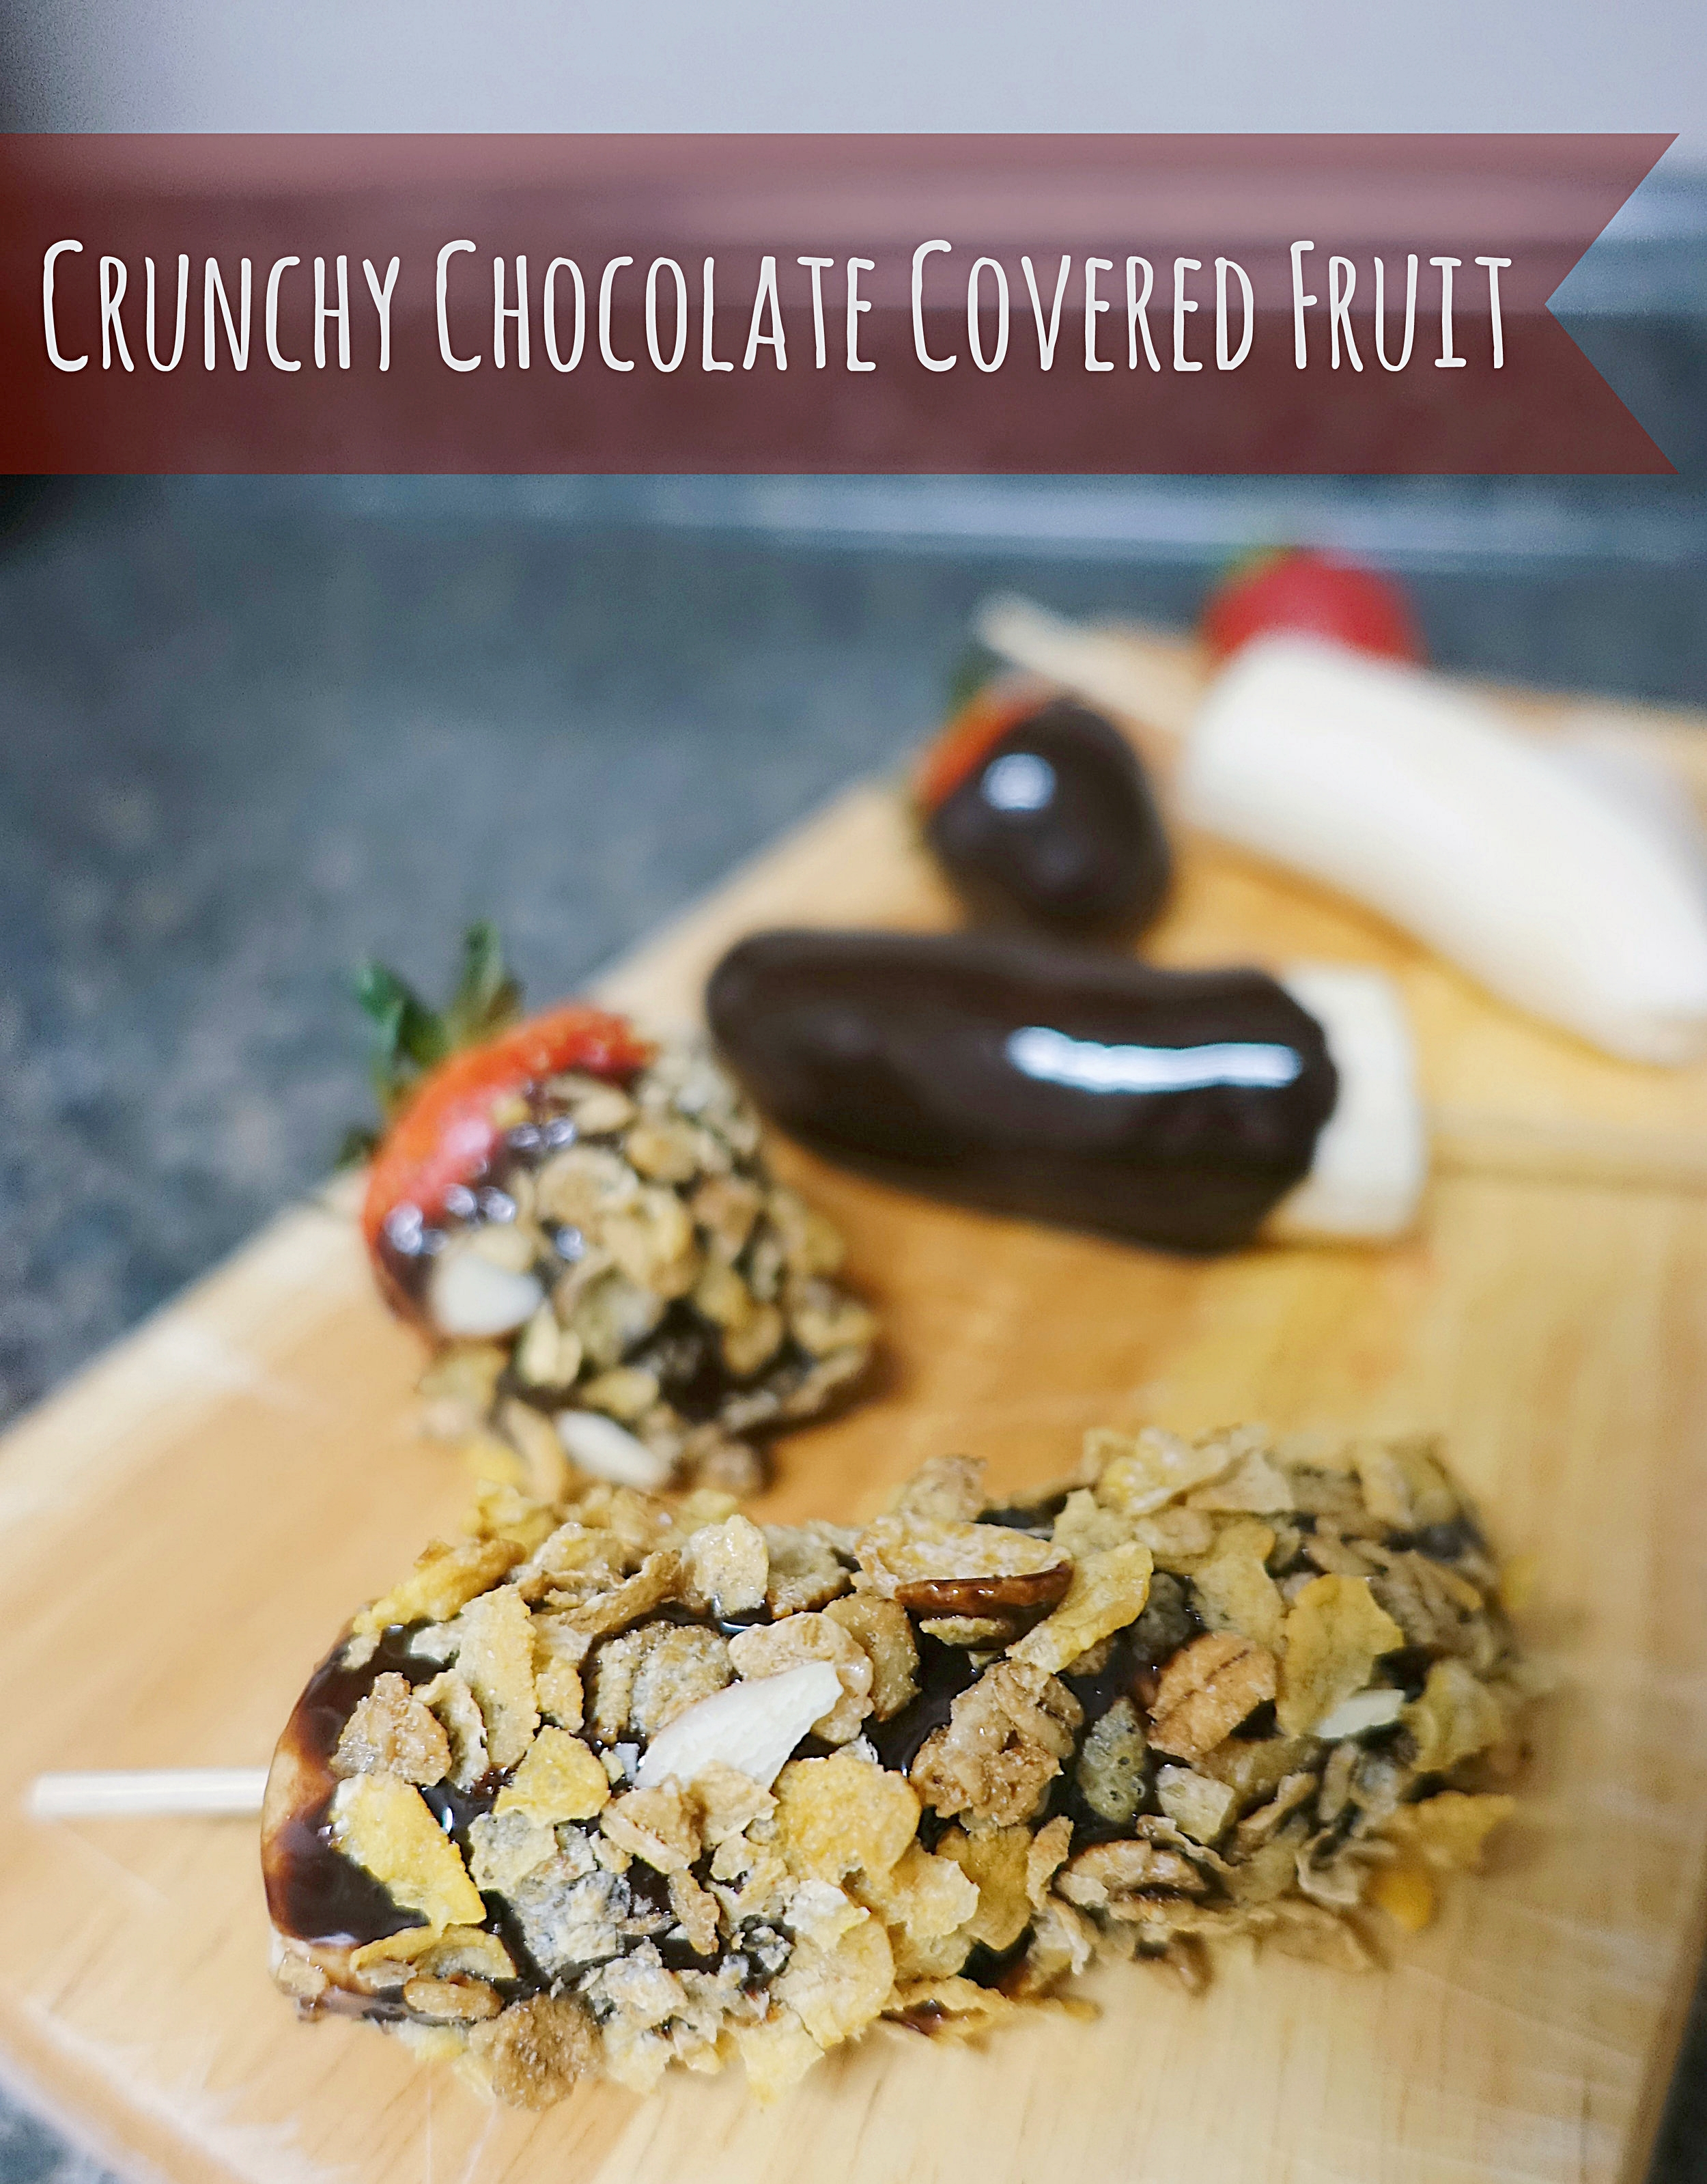 Crunchy Chocolate Covered Fruit